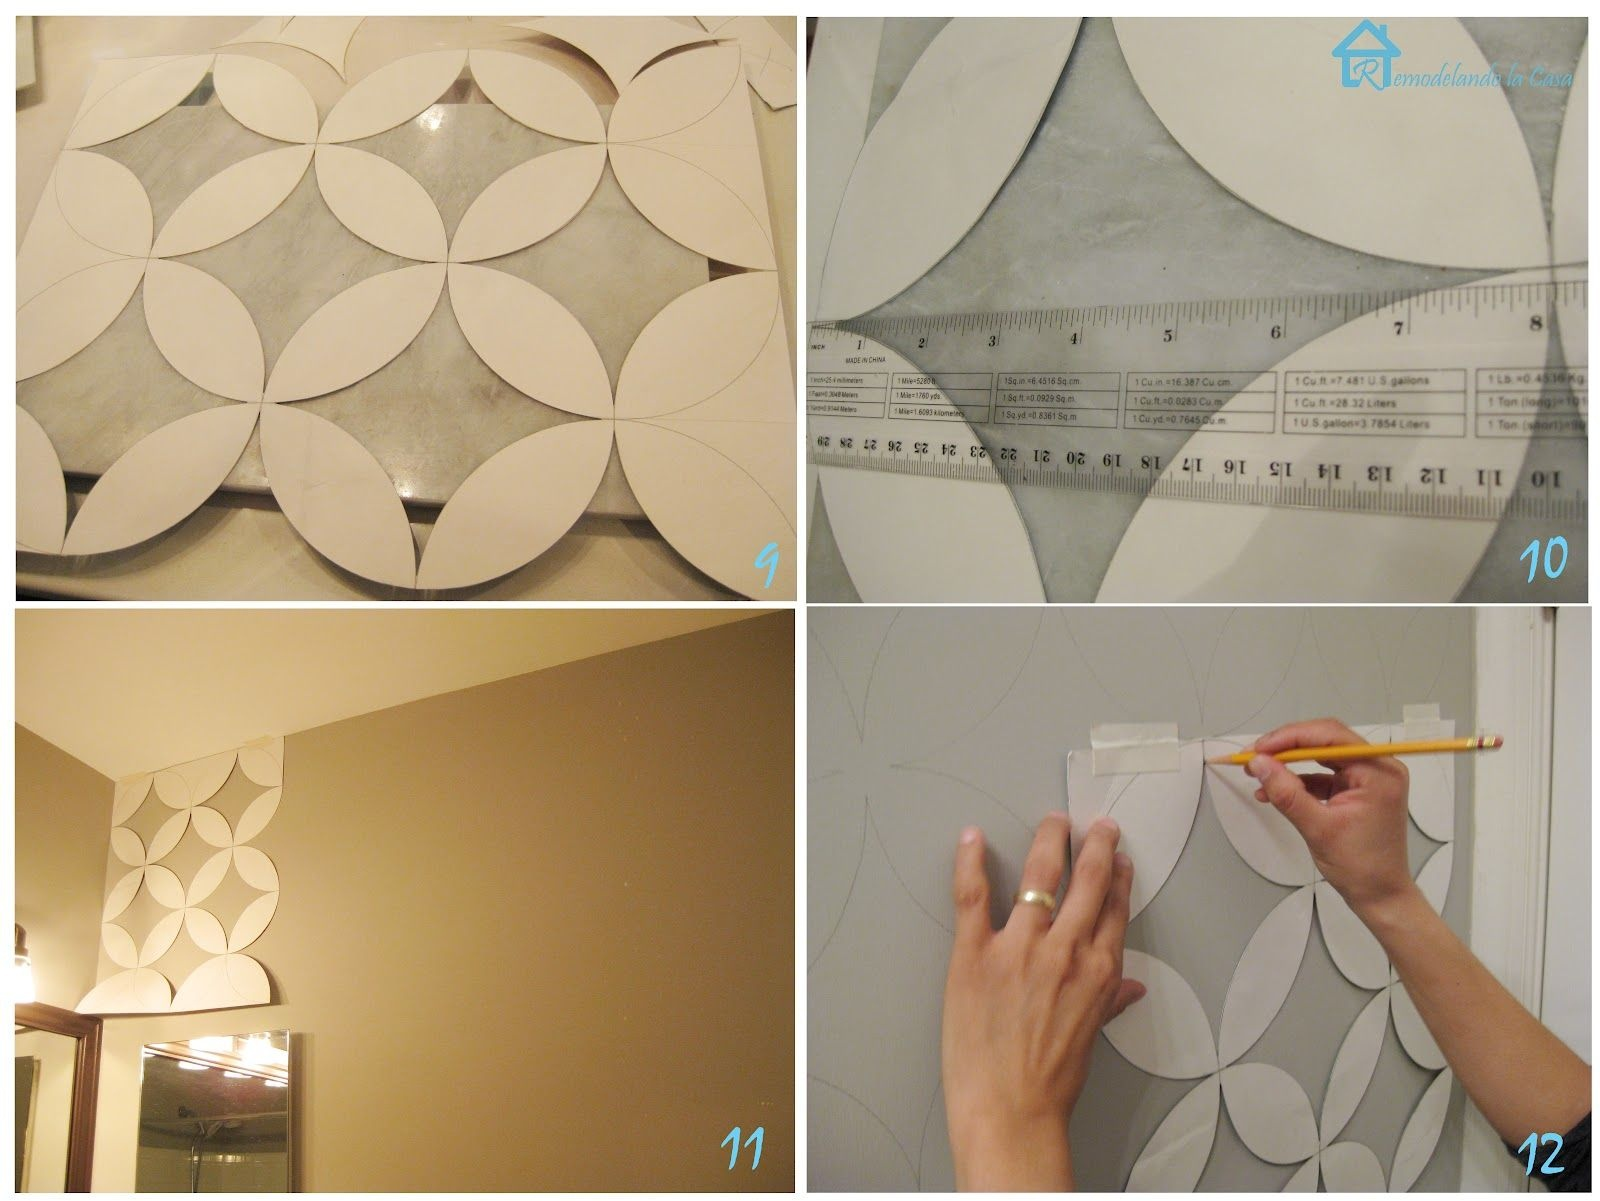 Free Printable Wall Stencils   With The Cut Out Pieces It Was Easier - Free Printable Wall Stencils For Painting